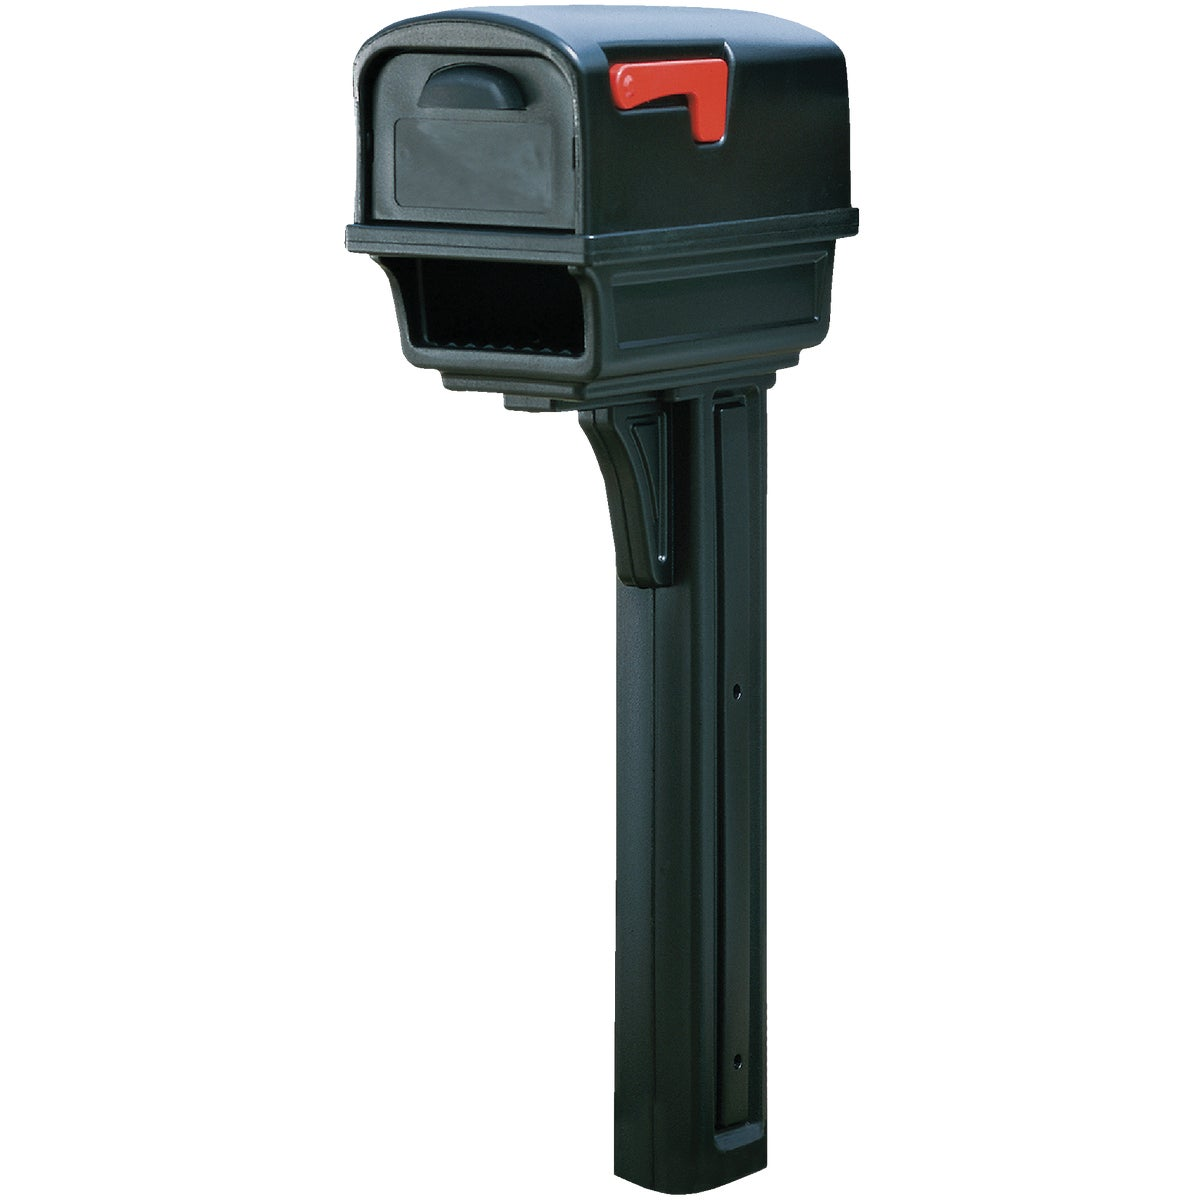 BLK GNTRY MAILBOX & POST - GC1B0000 by Solar Group